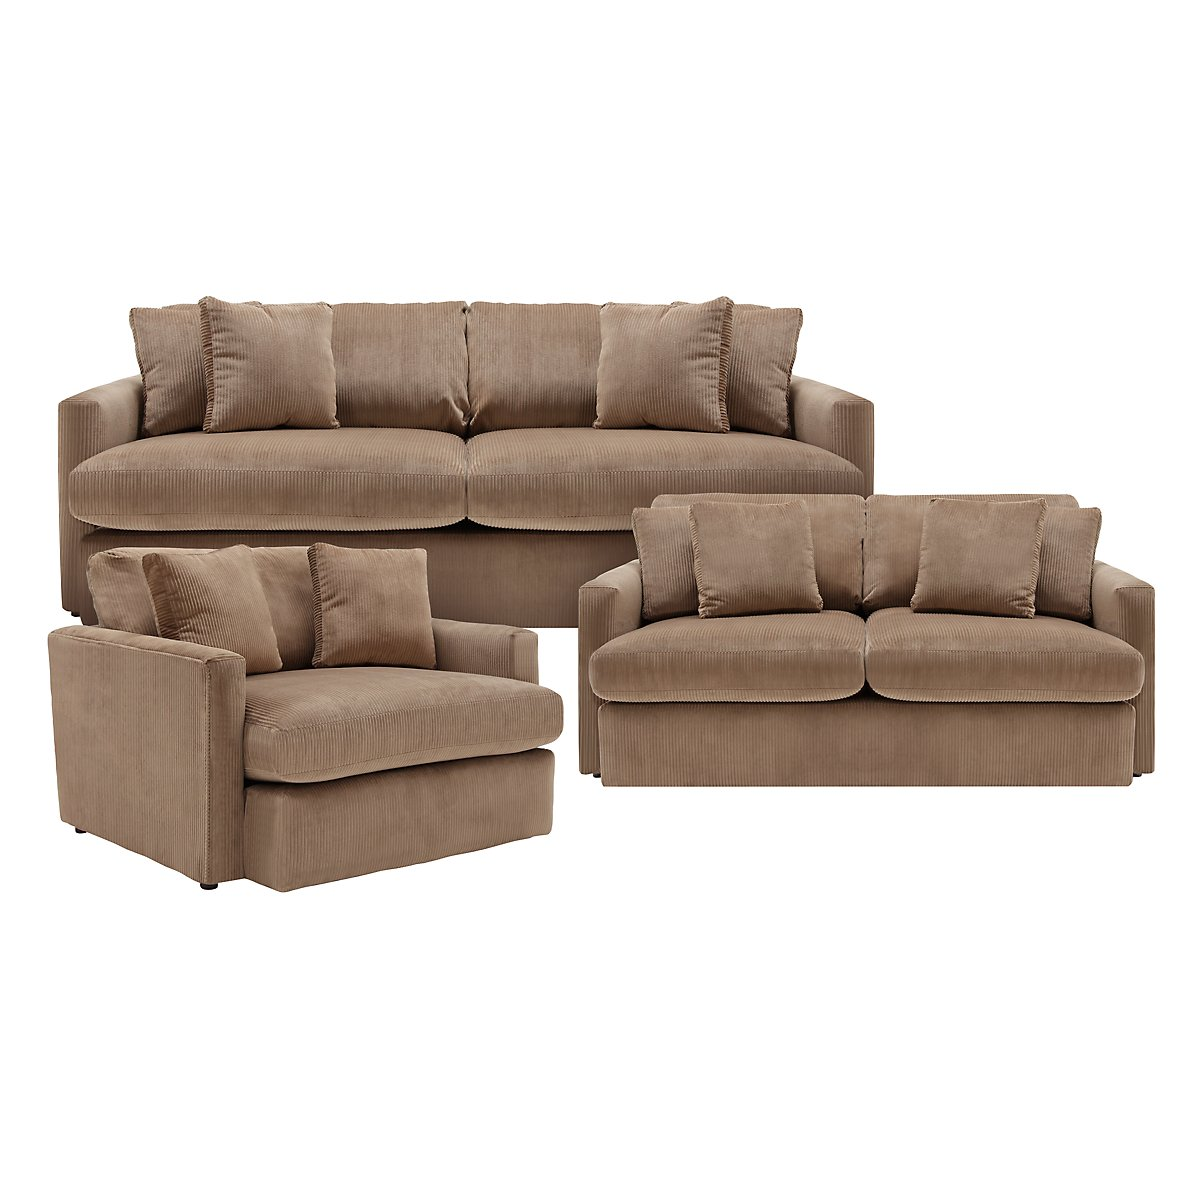 Taupe Sofas Best 25 Taupe Sofa Ideas On Pinterest Gray Couch Decor - TheSofa